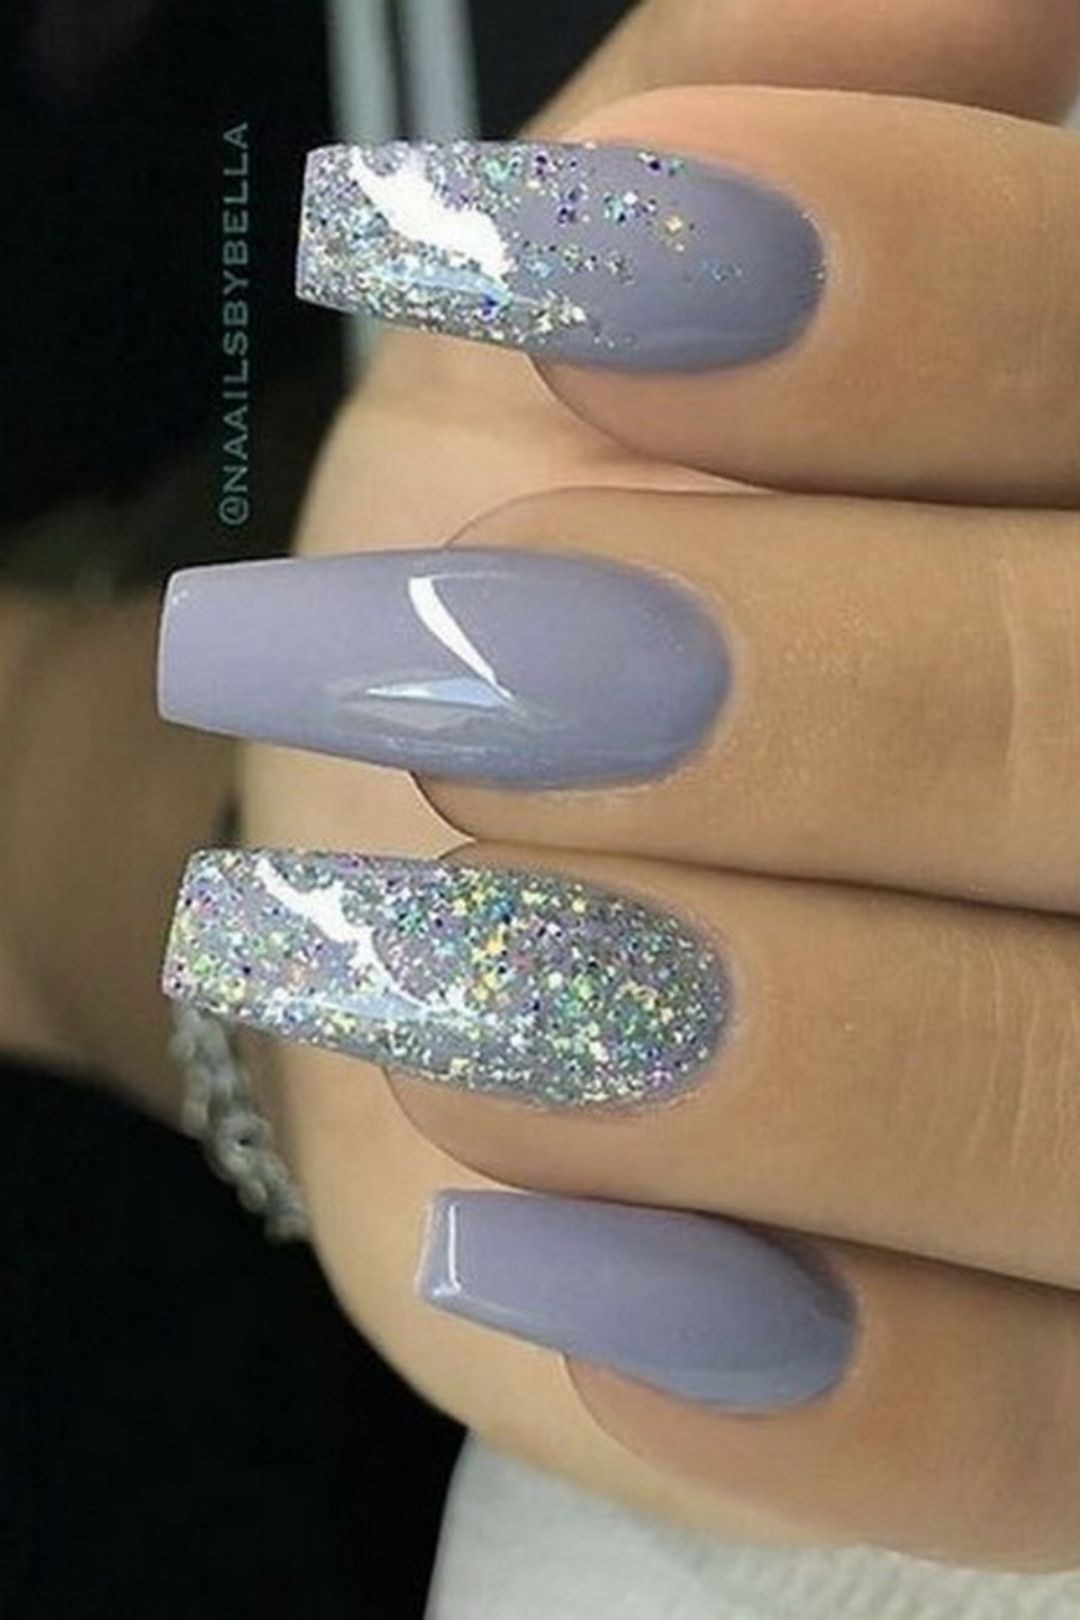 Pin By Anna Friedrich Ehem Fraberger On Herbst Nagel Farben In 2020 Mauve Nails Pretty Acrylic Nails Gray Nails